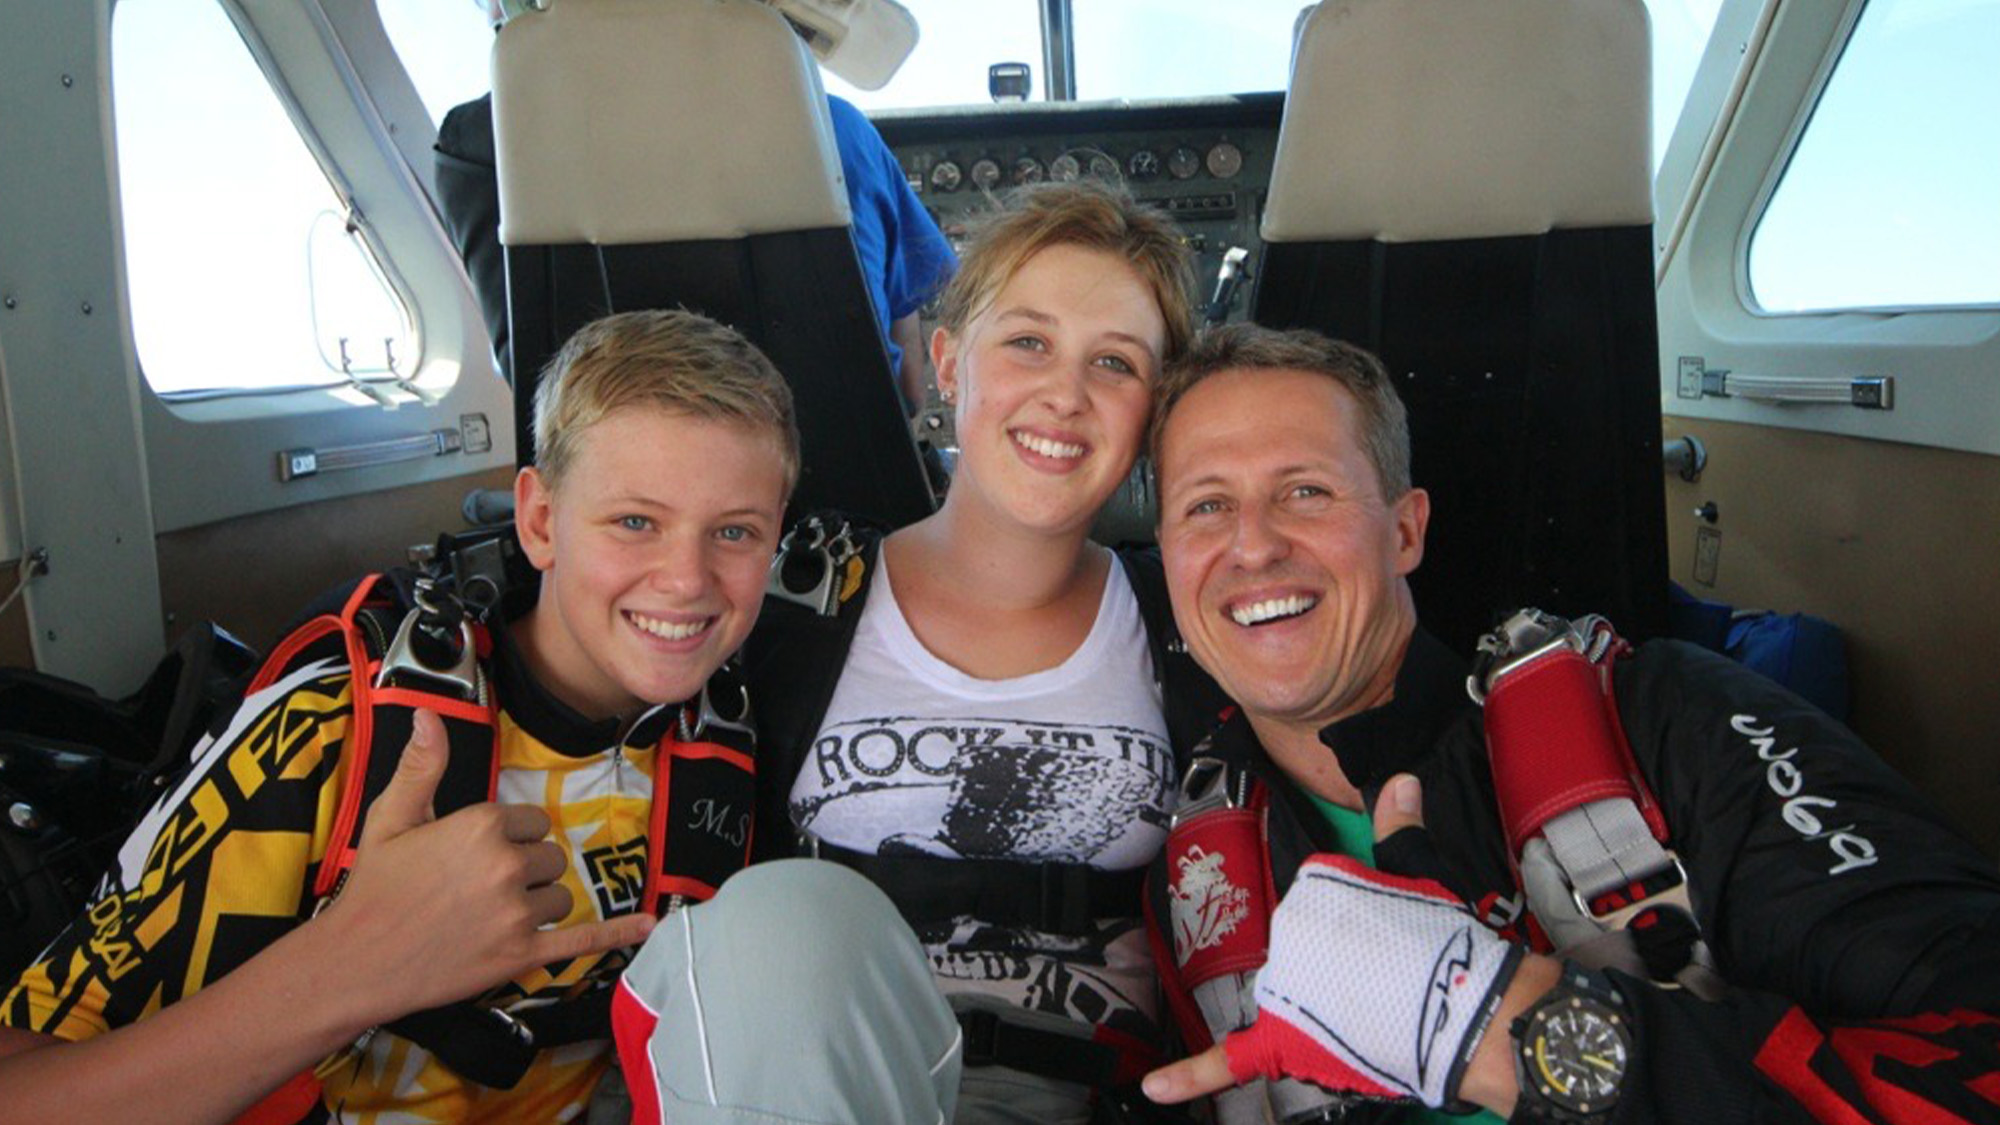 Michael Schumacher with family in plane